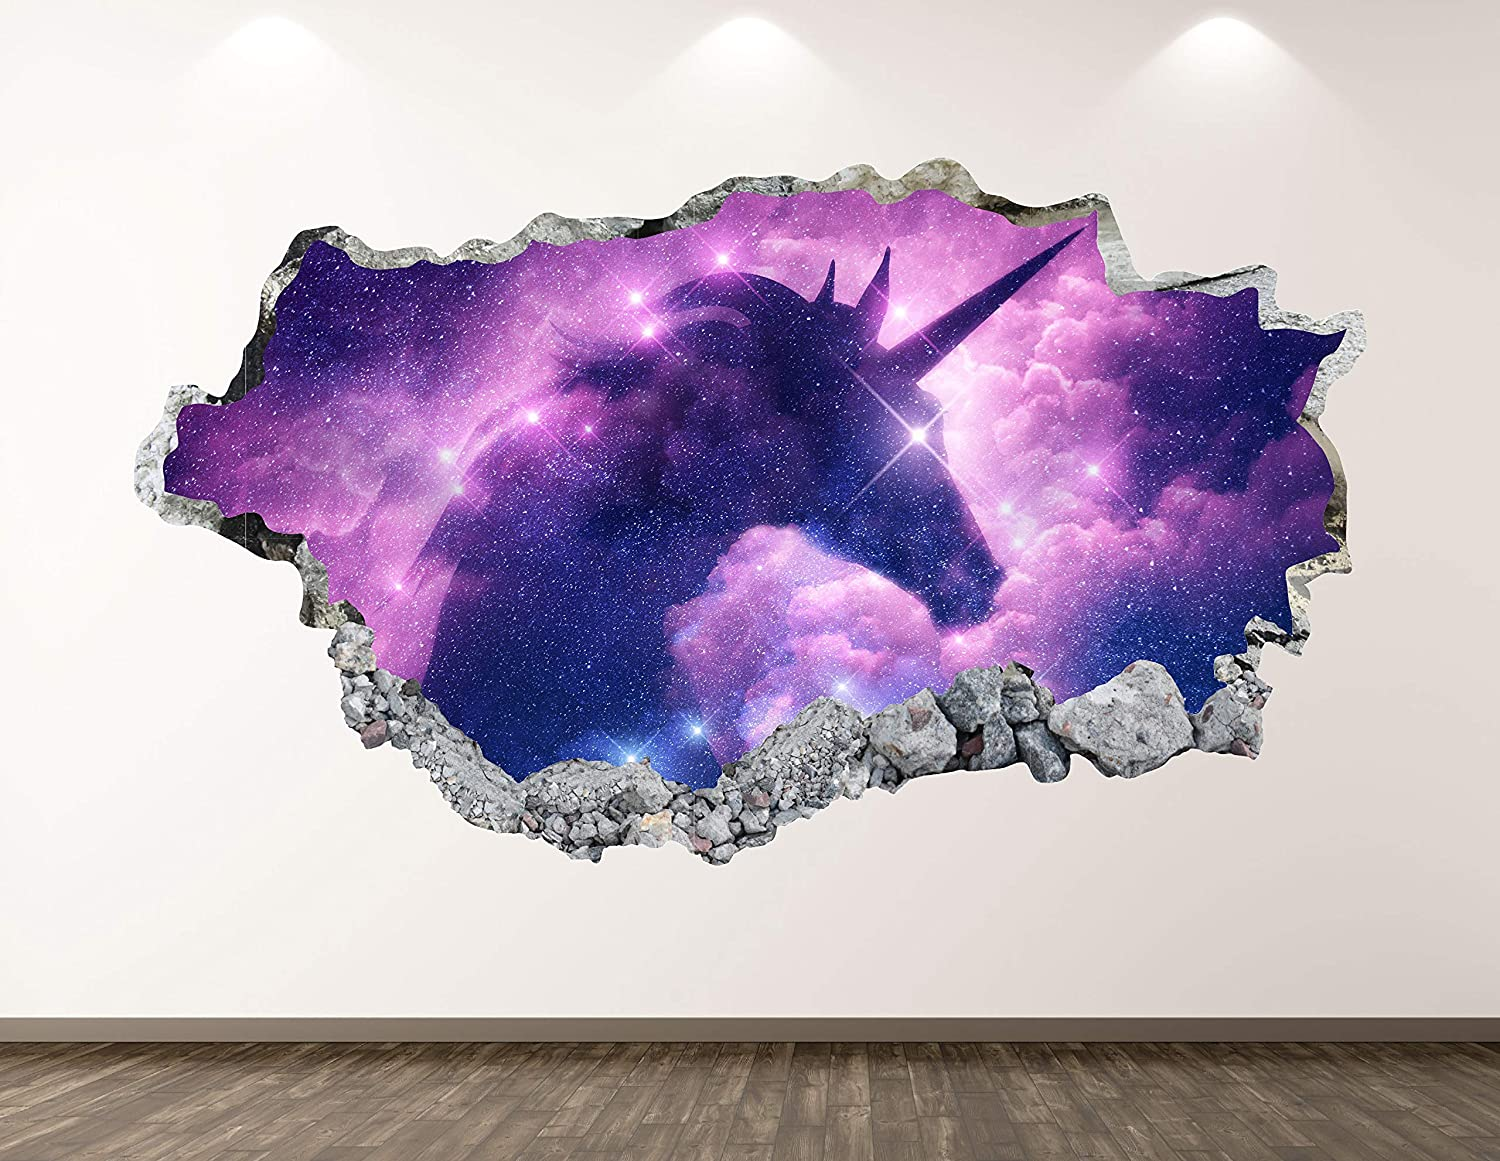 """West Mountain Unicorn Wall Decal Art Decor 3D Smashed Mythical Creature Sticker Poster Kids Room Mural Custom Gift BL358 (22"""" W x 14"""" H)"""